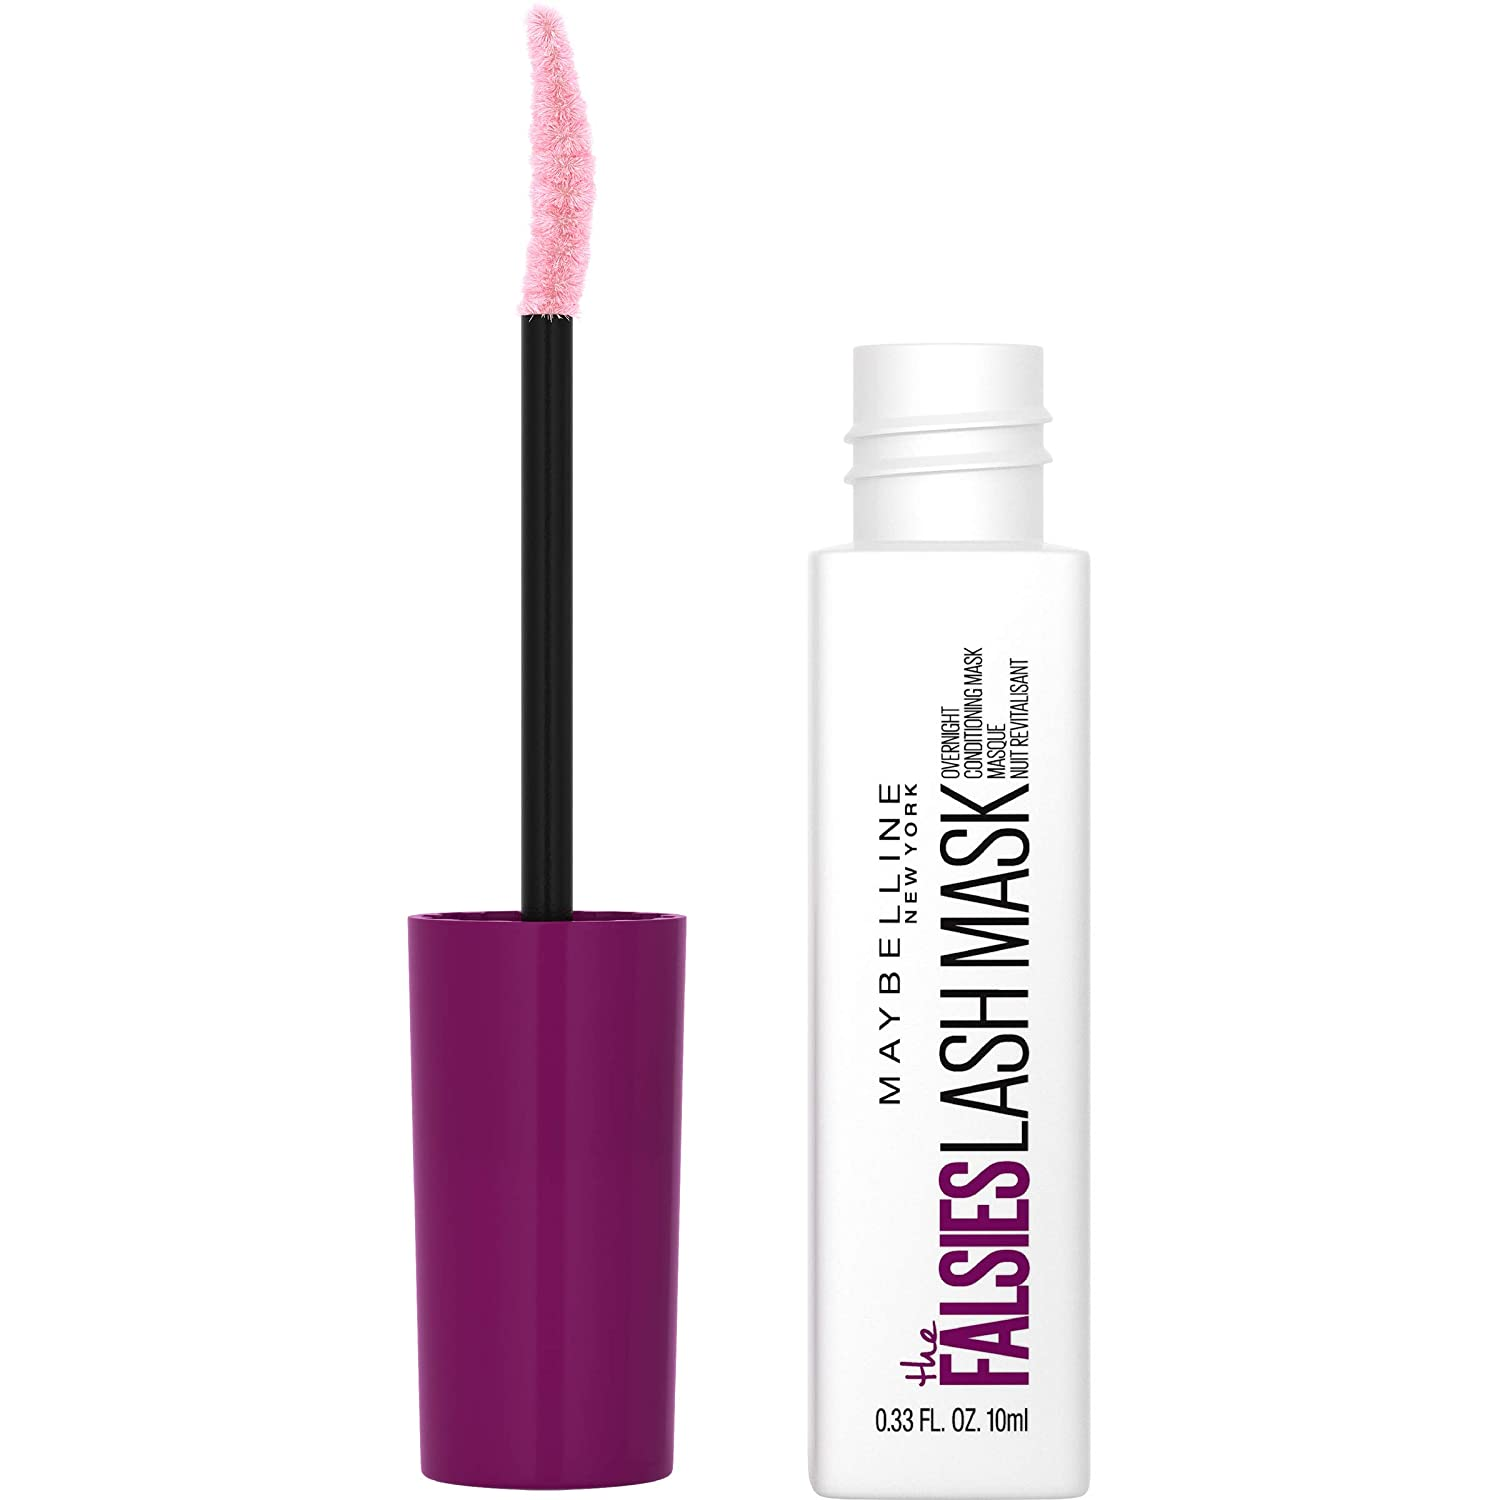 Maybelline The Falsies Lash Mask Overnight Eyelash Conditioner with Shea Butter and Argan Oil - Shopping District